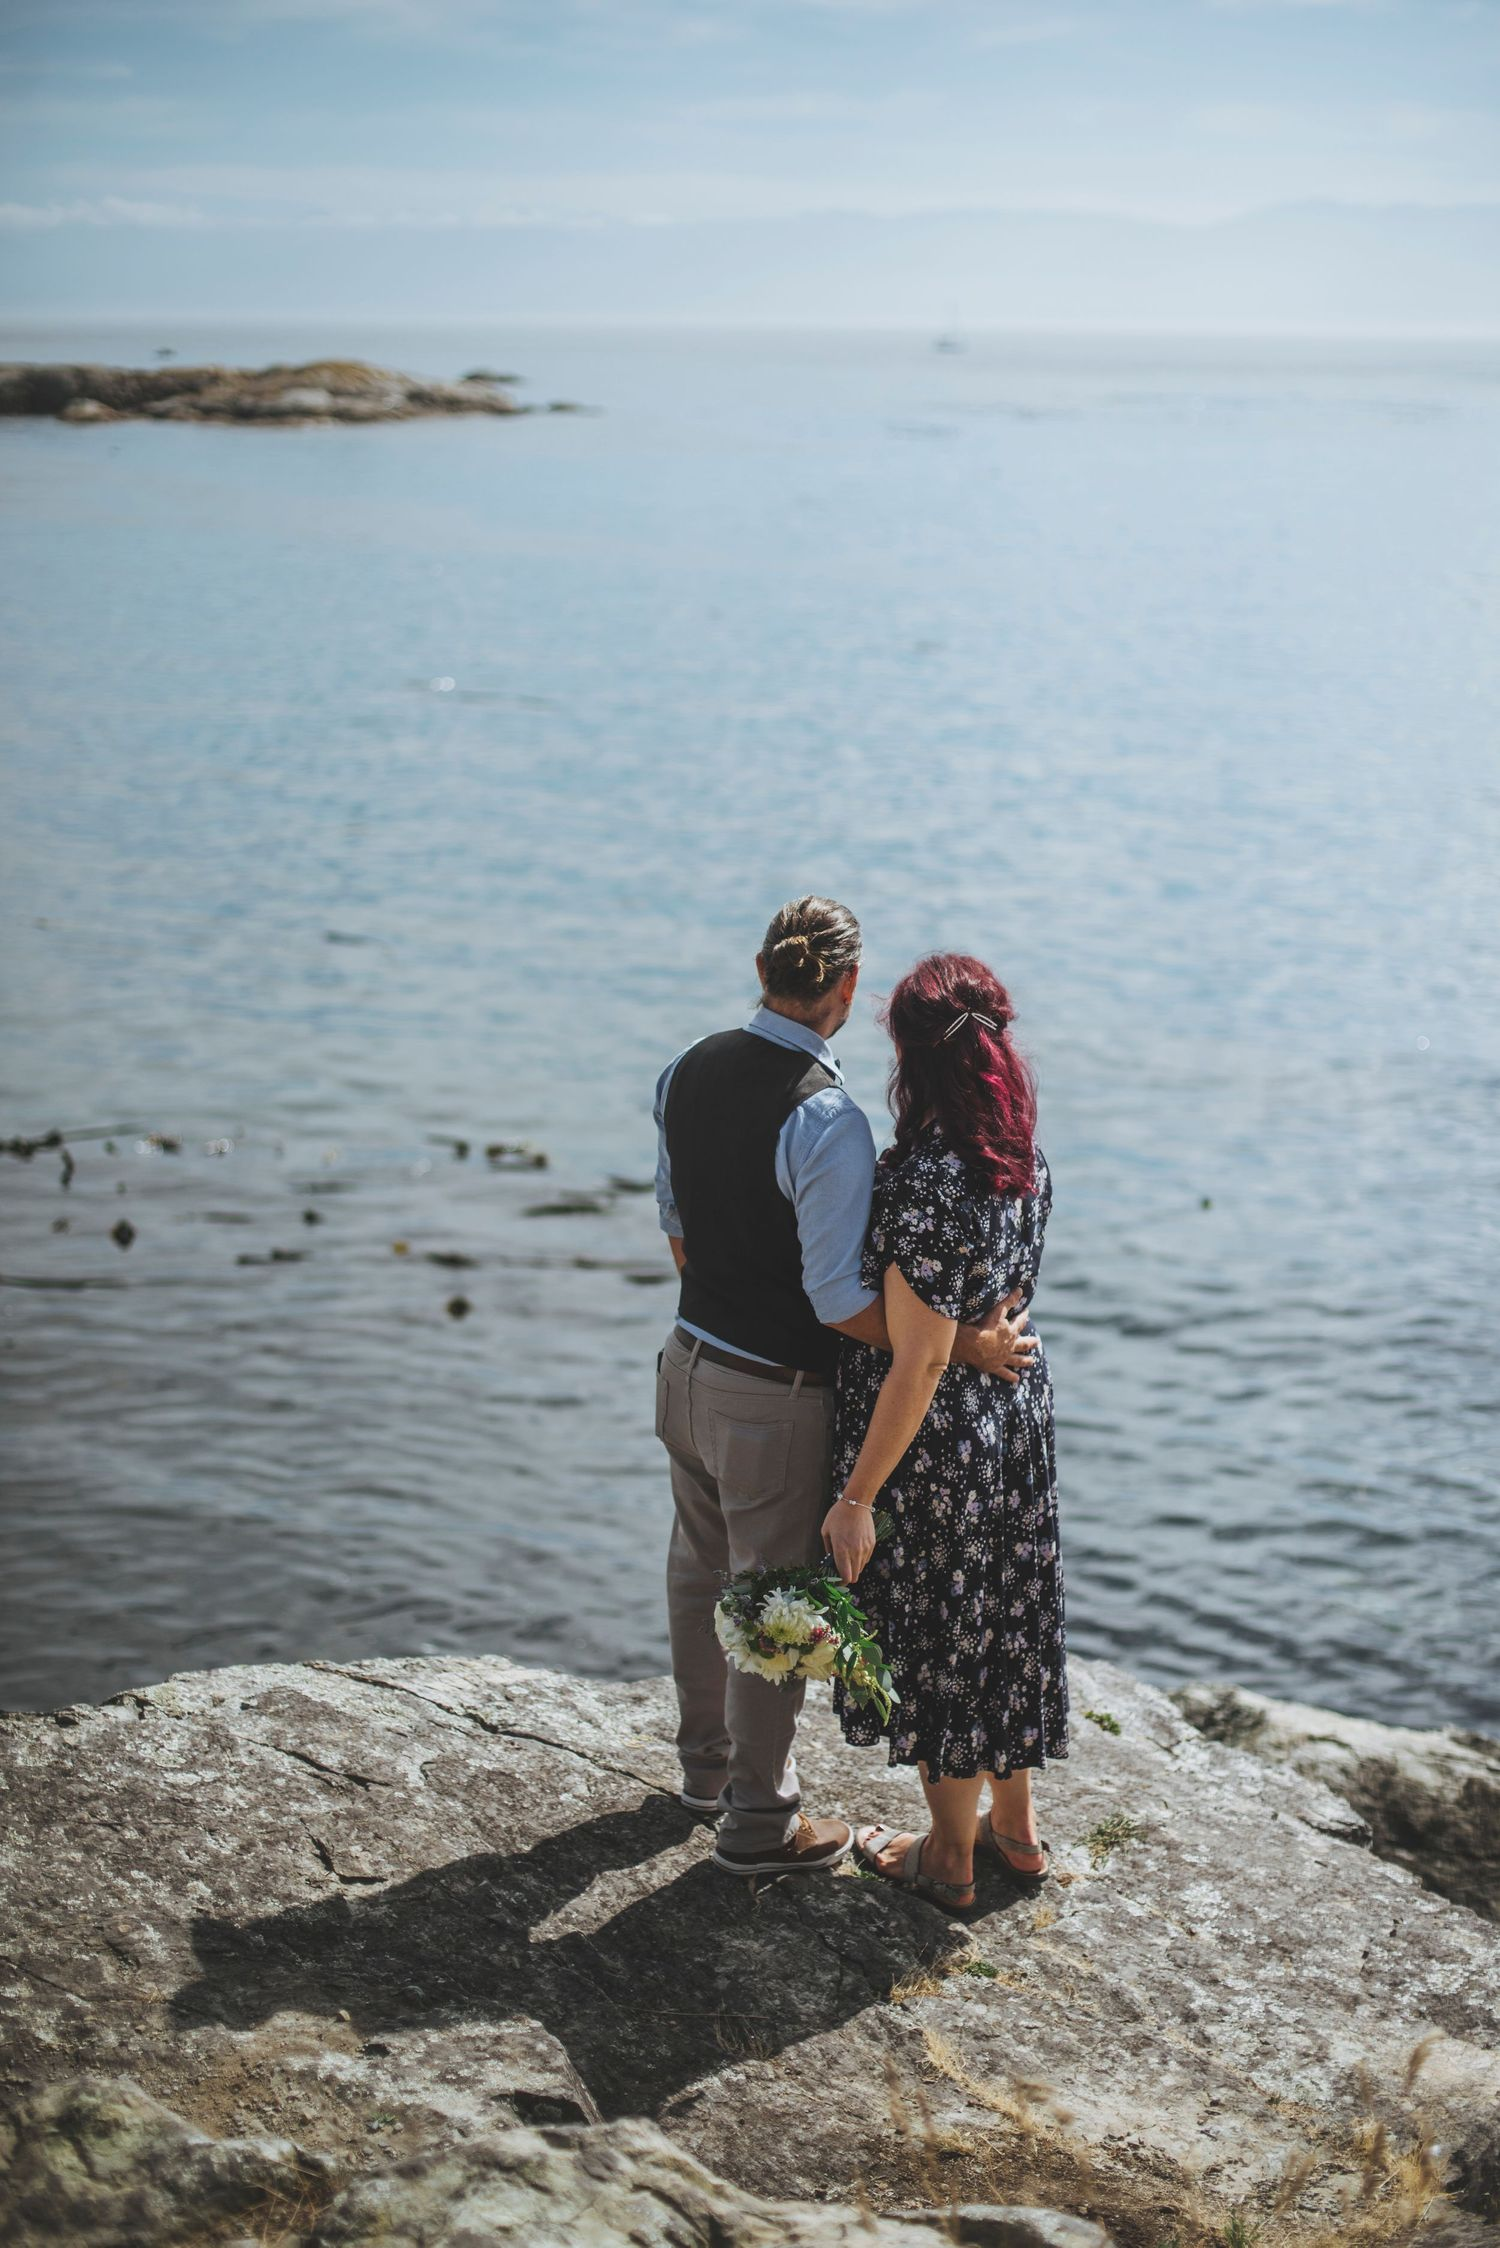 saxe point park. victoria bc wedding photographer. victoria bc elopement.